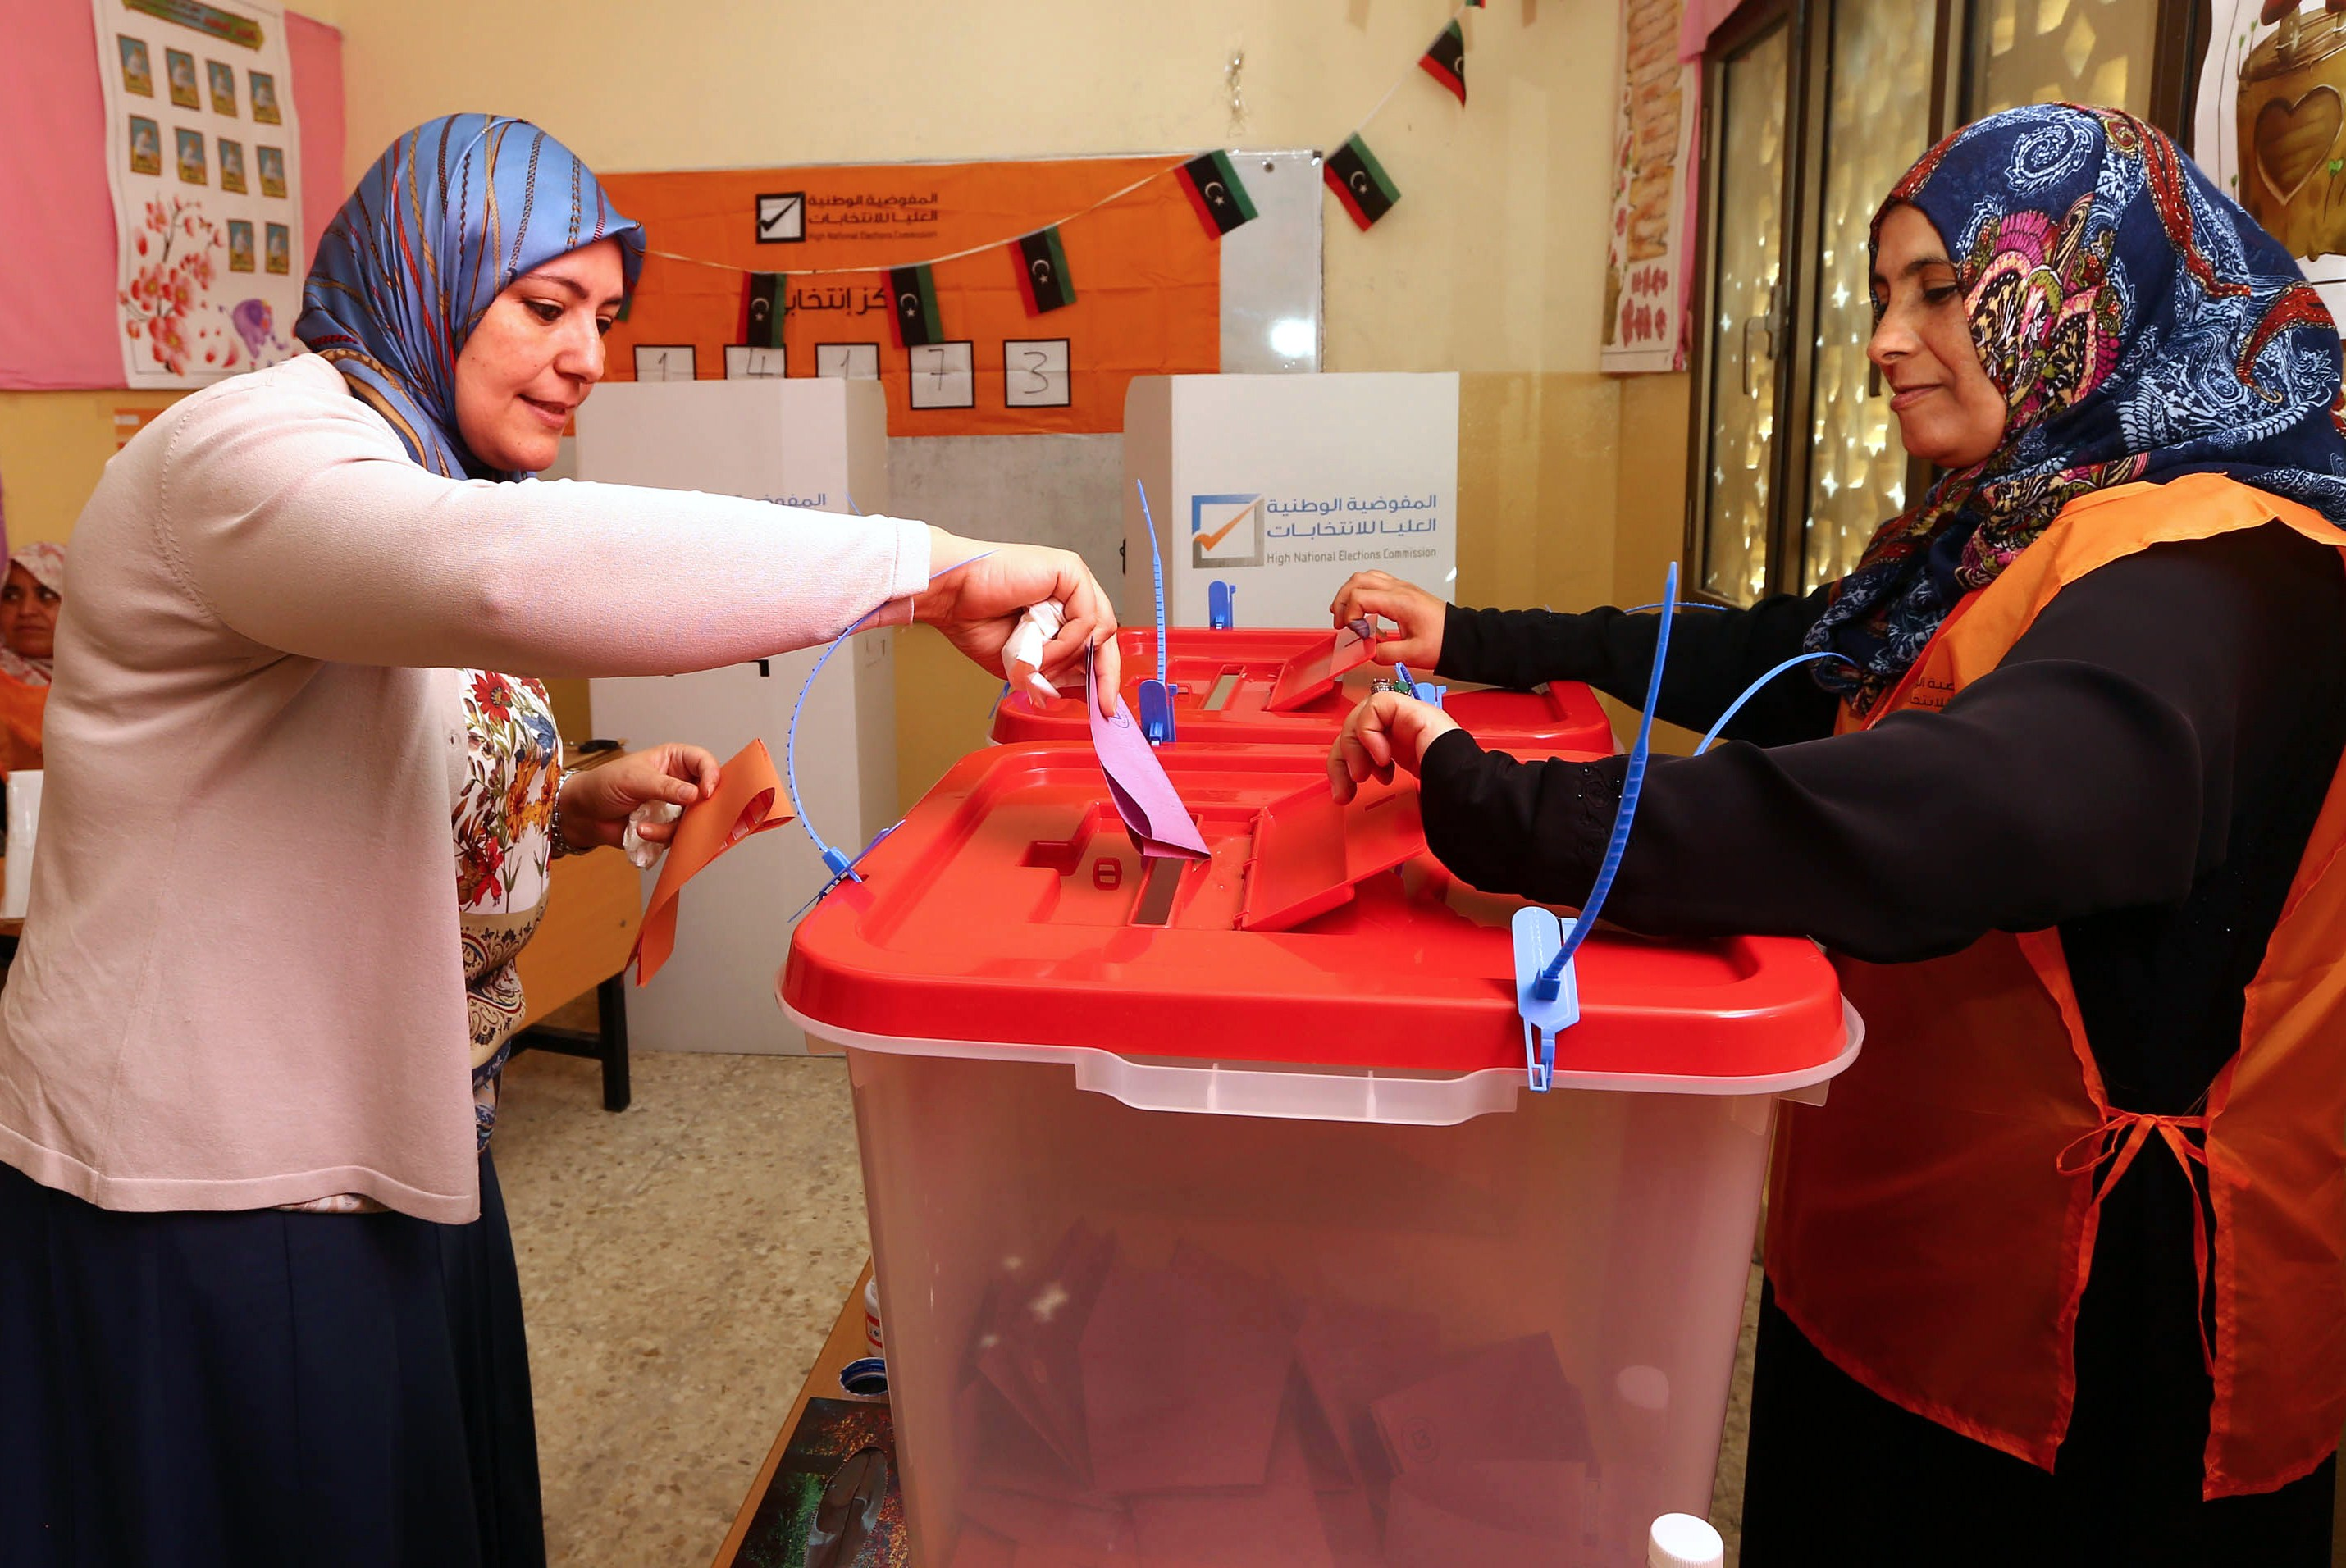 A Libyan woman casts her ballot at a polling station during legislative elections in the capital Tripoli on June 25, 2014. Polling was under way across Libya in a general election seen as crucial for the future of a country hit by months of political chaos and growing unrest. Voters are choosing from among 1,628 candidates, with 32 seats in the 200-strong General National Congress reserved for women and would-be MPs banned from belonging to any political party.   (AFP PHOTO/MAHMUD TURKIA)